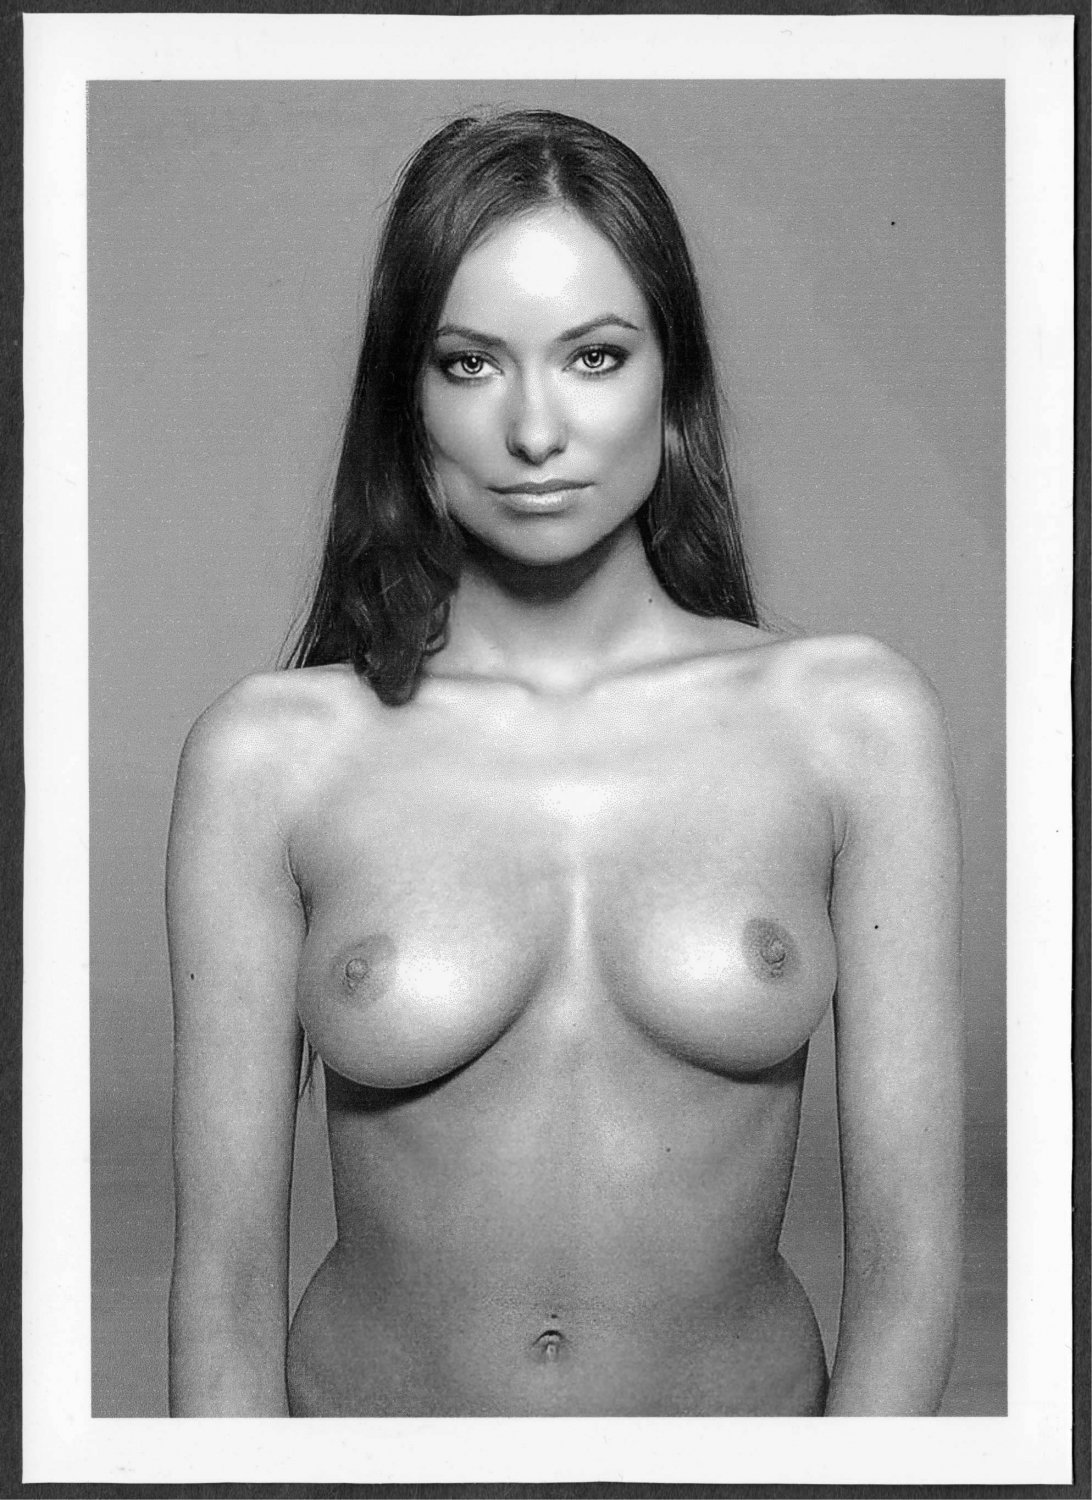 OLIVIA WILDE TOTALLY NUDE BIG LARGE BREASTS NEW REPRINT 5 X 7 #000